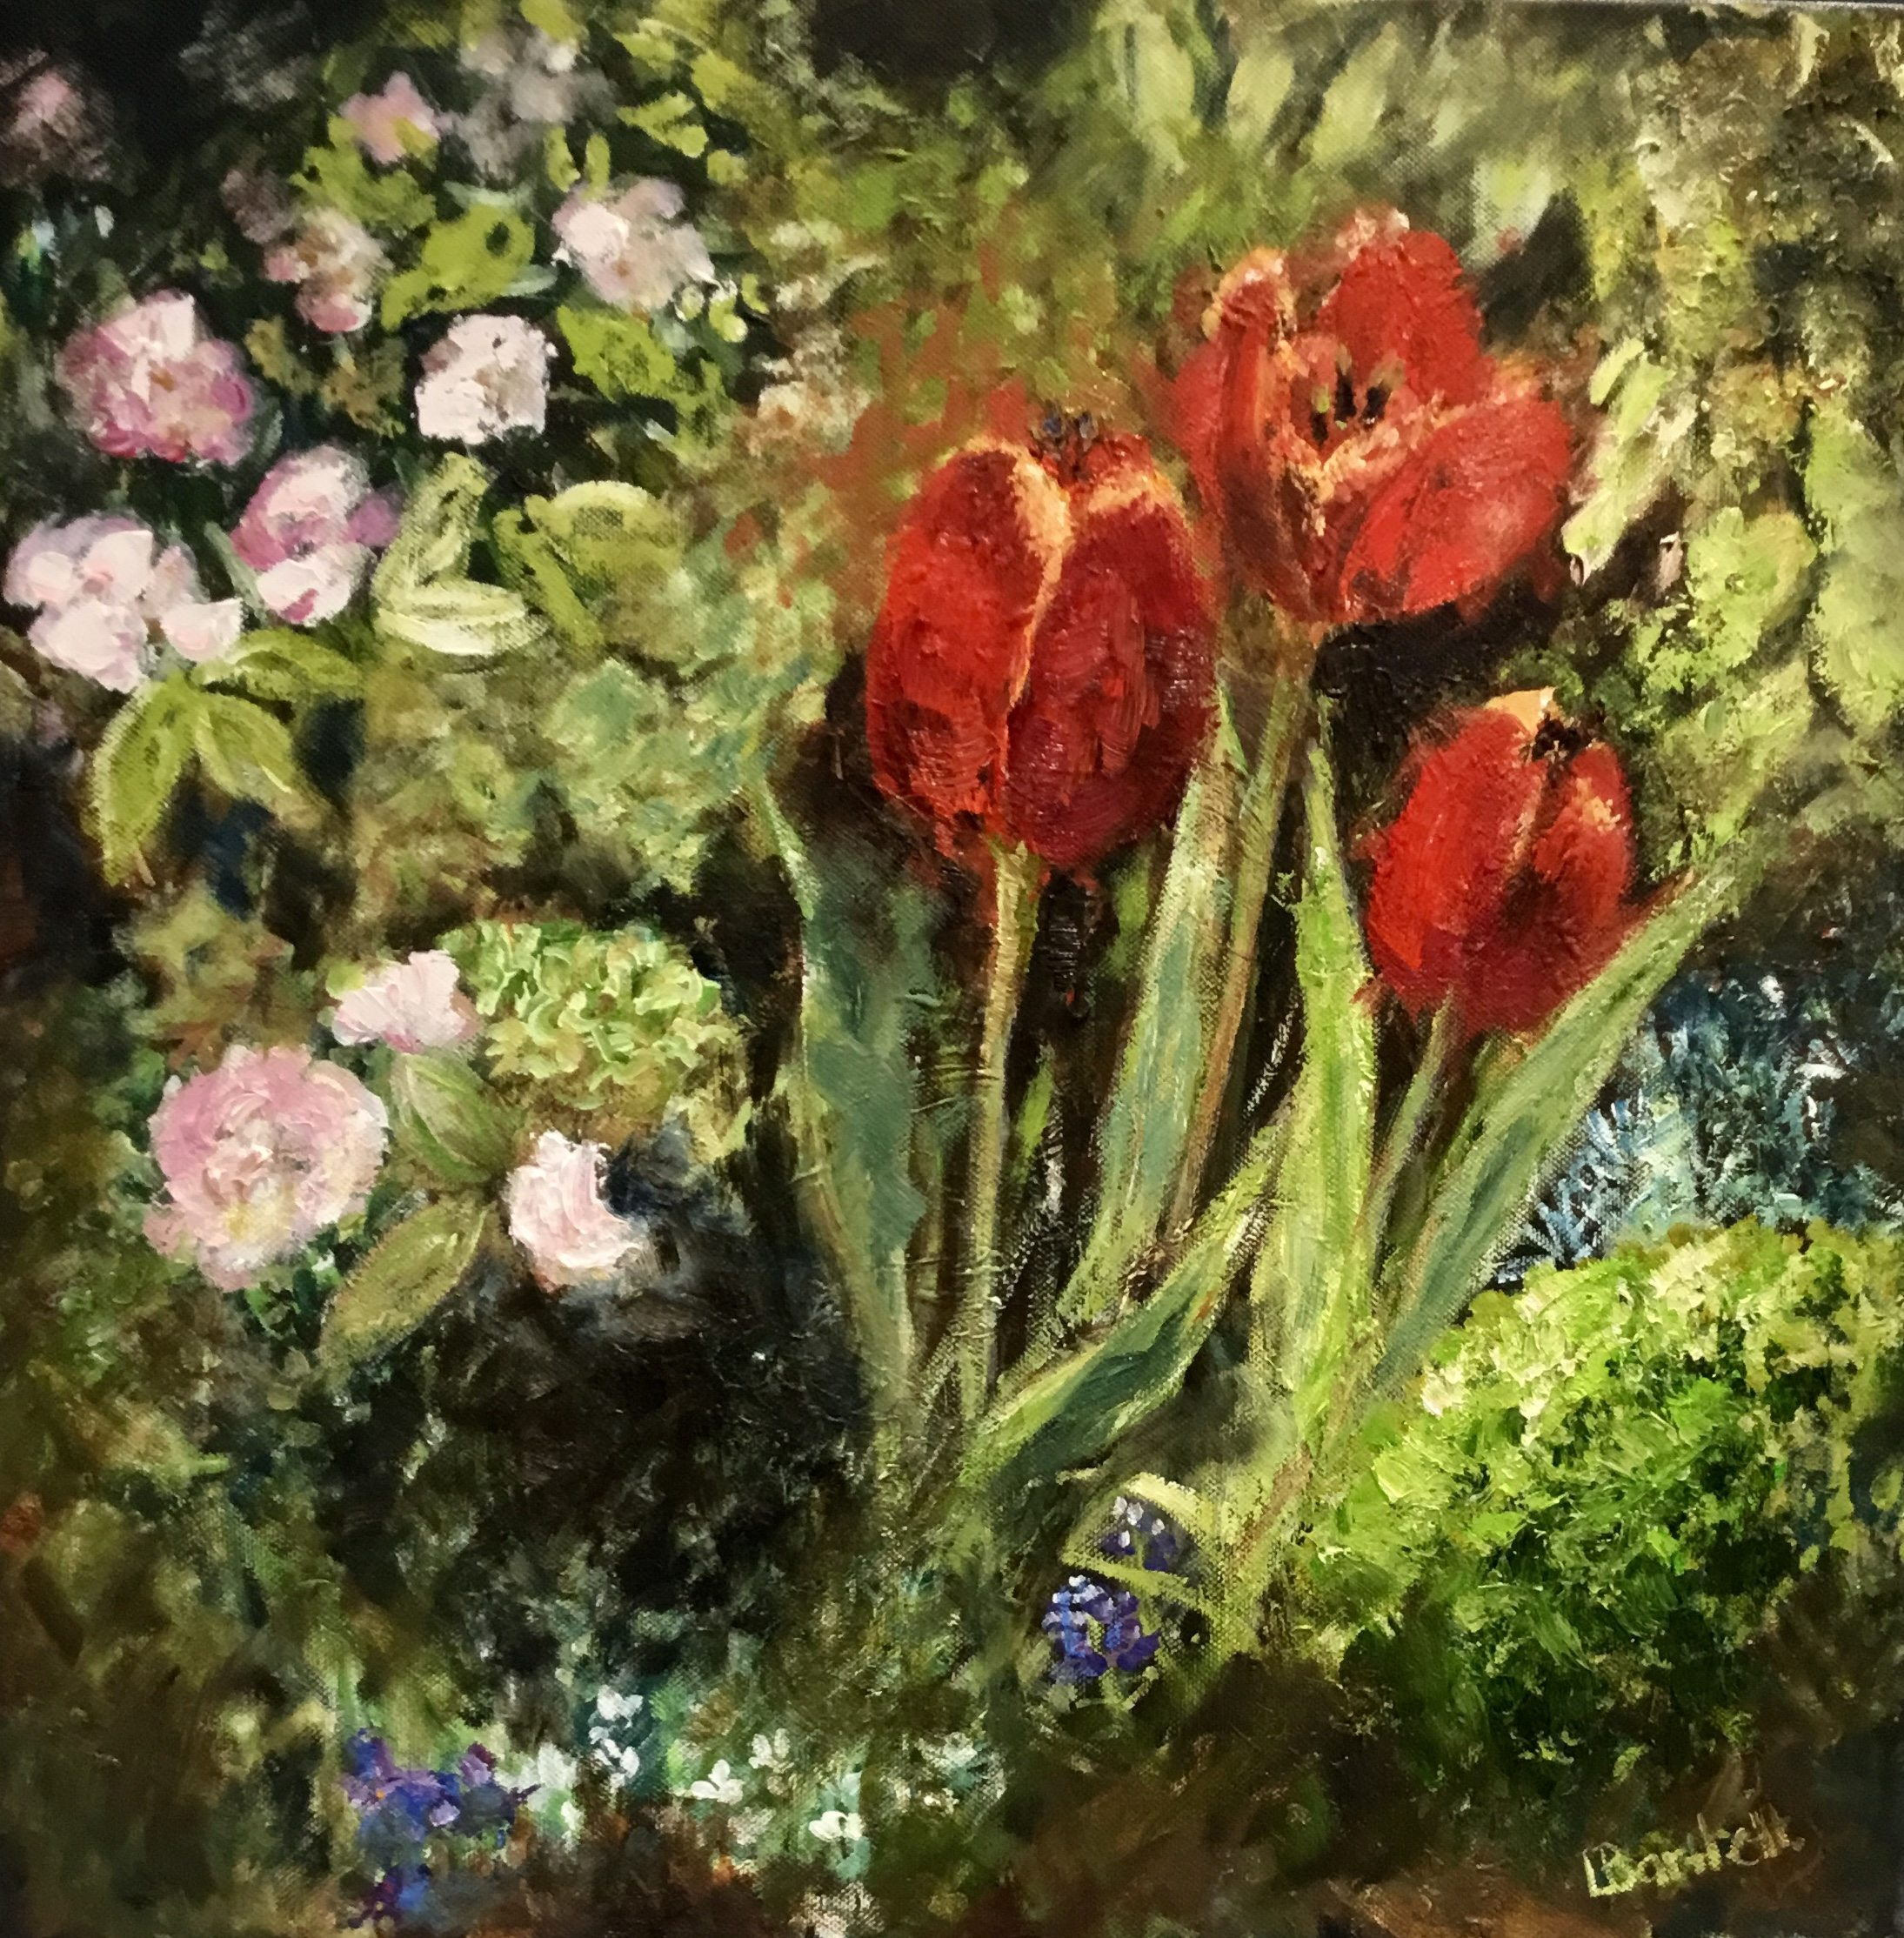 """Ruby Tulips"" 50cm x 50cm Oil on deep canvas £450.00. Available at The Frame Gallery in Odiham."